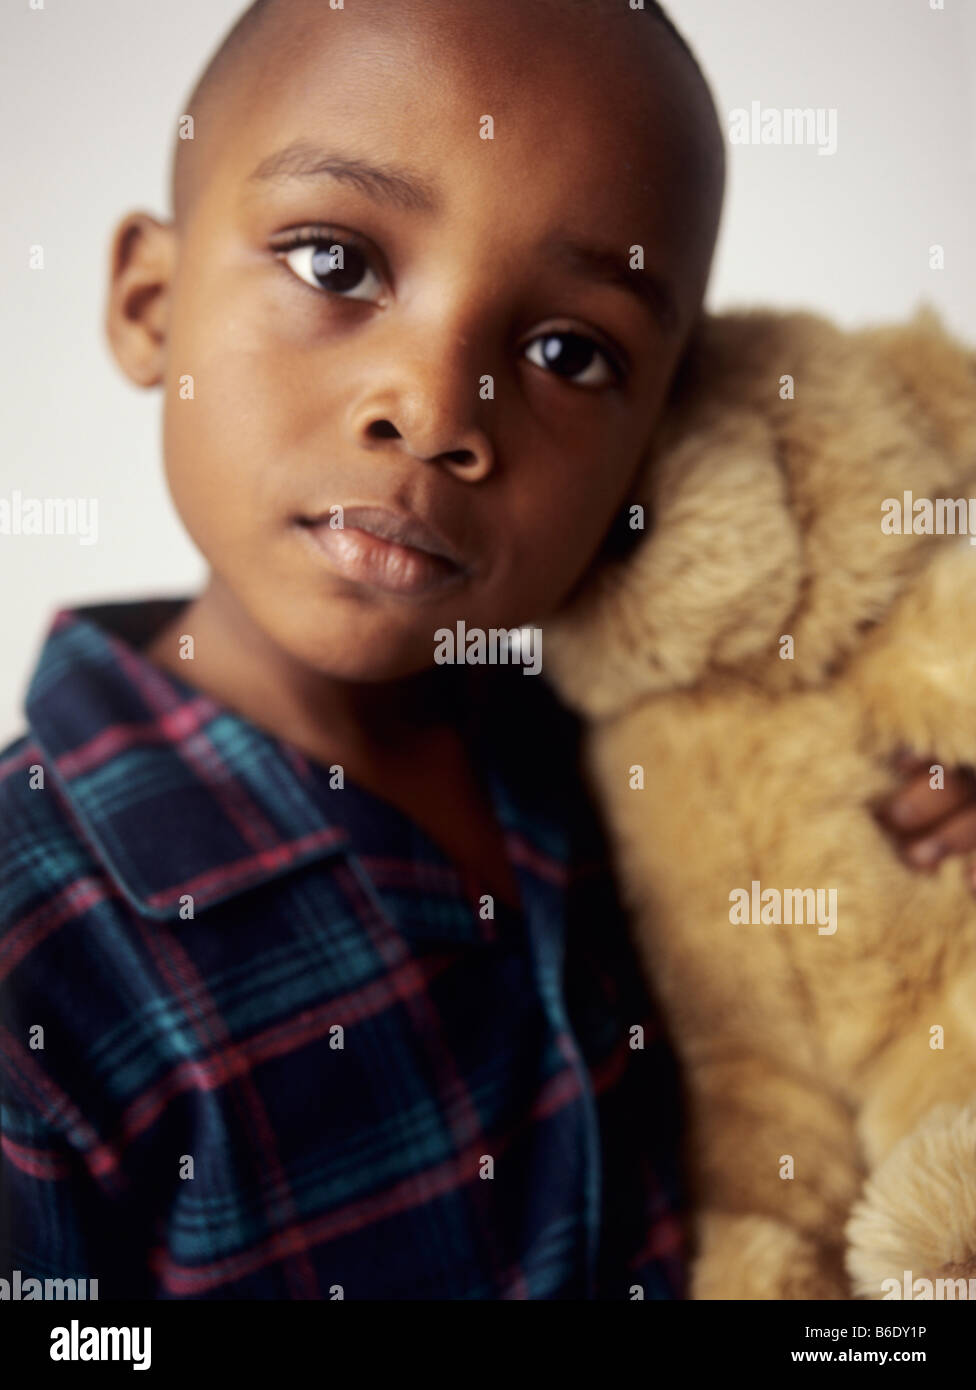 Boy with teddy bear.4 year old boy smiling and holding a teddy bear.Cuddly toys can provide a child with companionship. - Stock Image